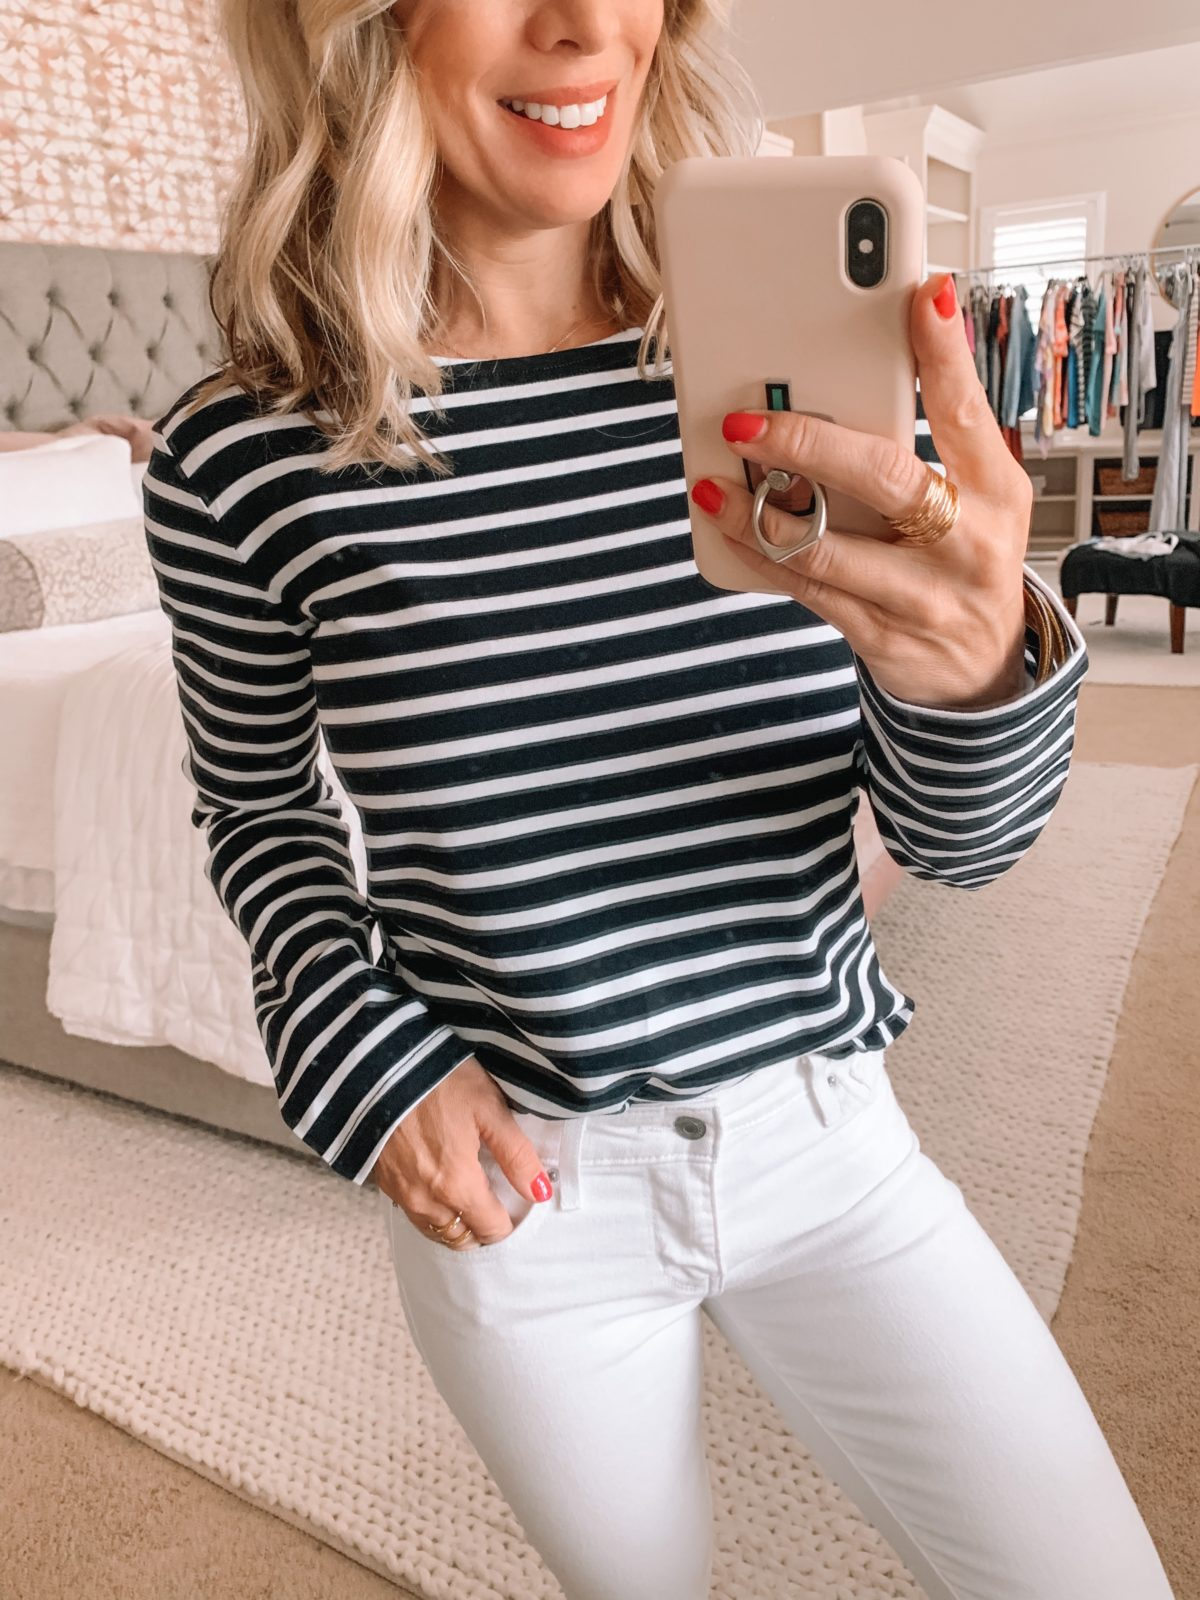 Amazon Fashion Finds, Striped Boat Neck Top, White Jeans